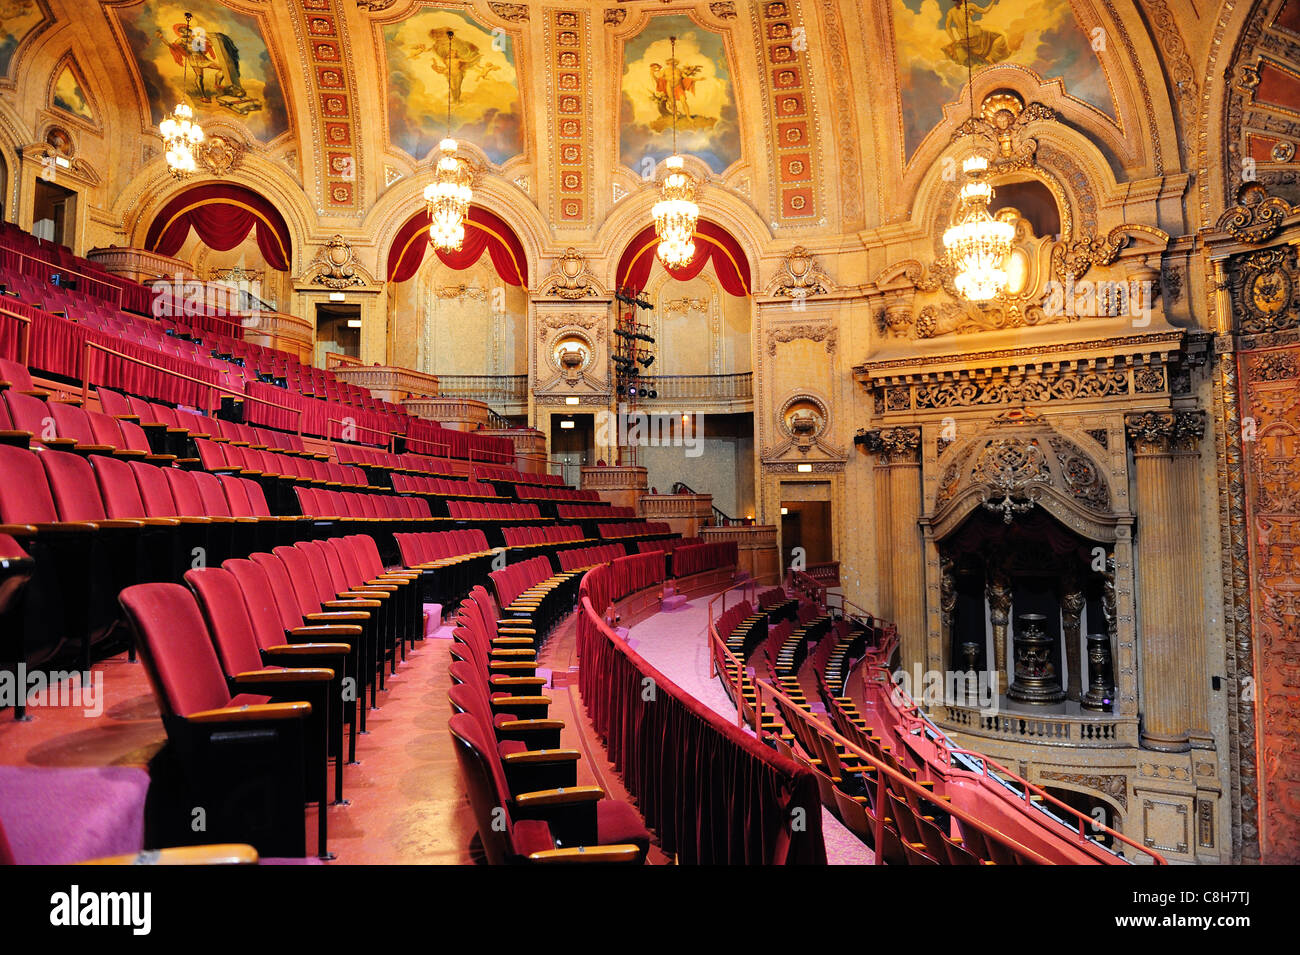 Chicago Theatre Interior View Stock Photo Royalty Free